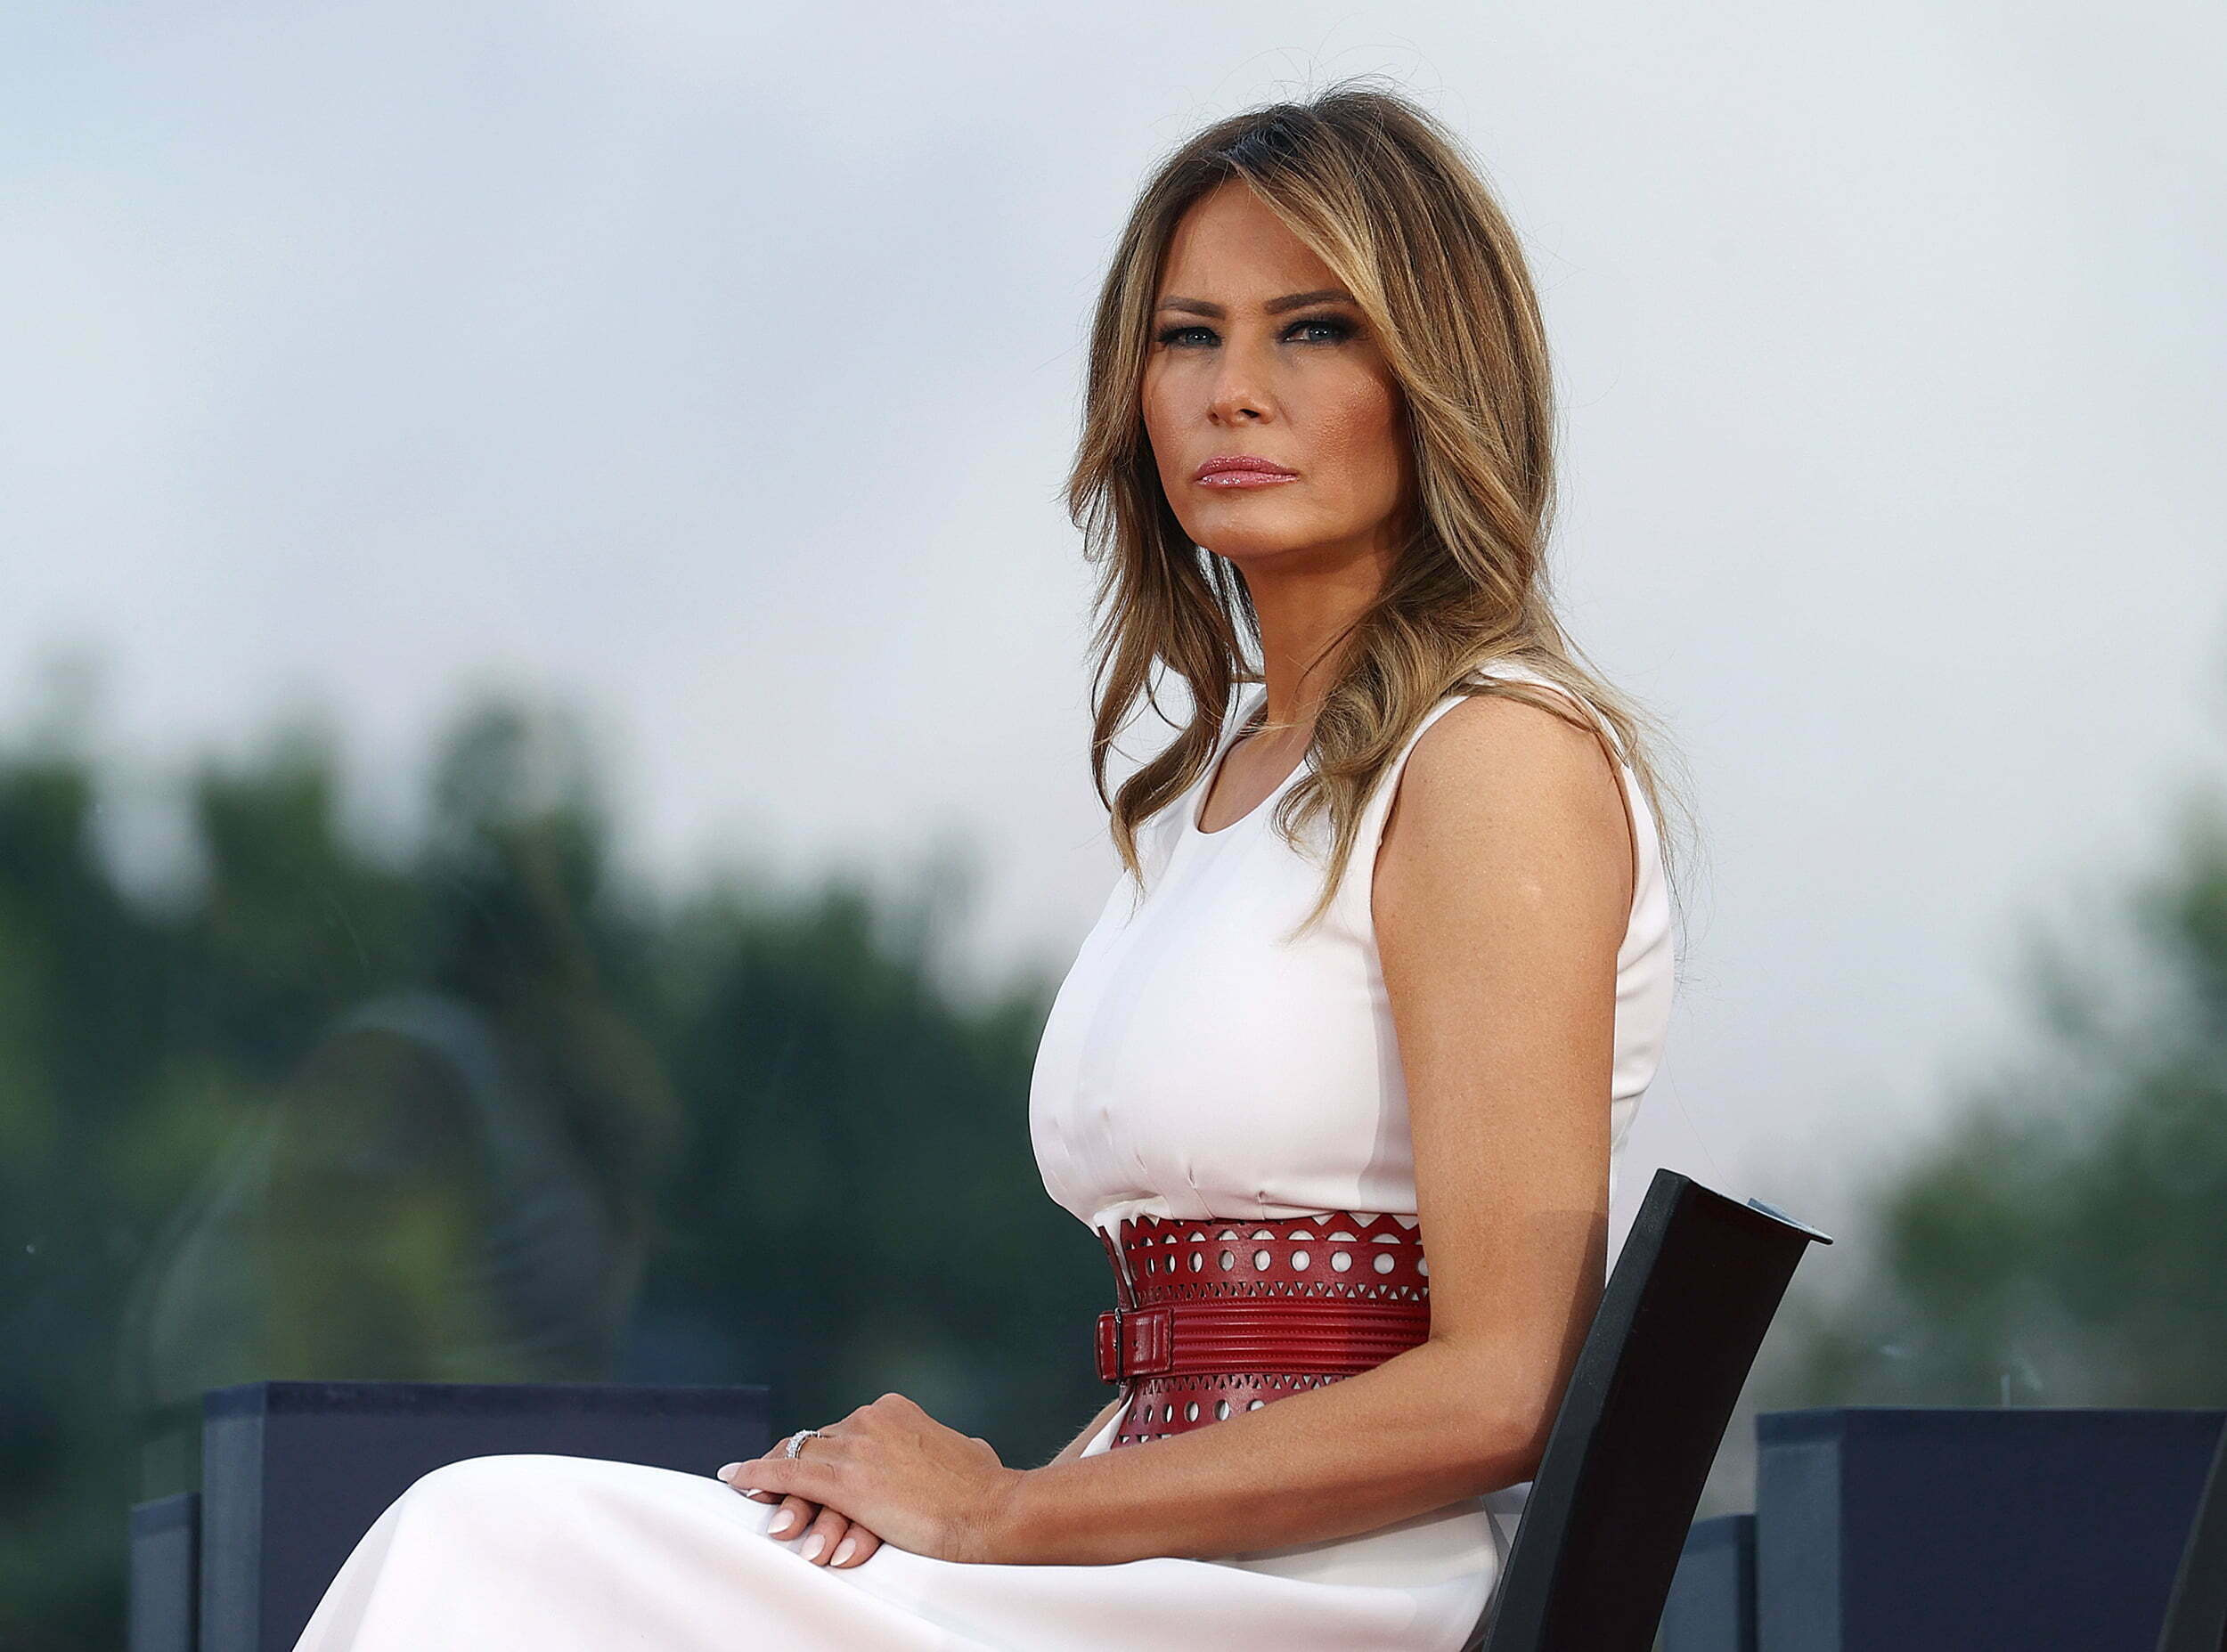 Current version of Melania Trump with modeling photos 1